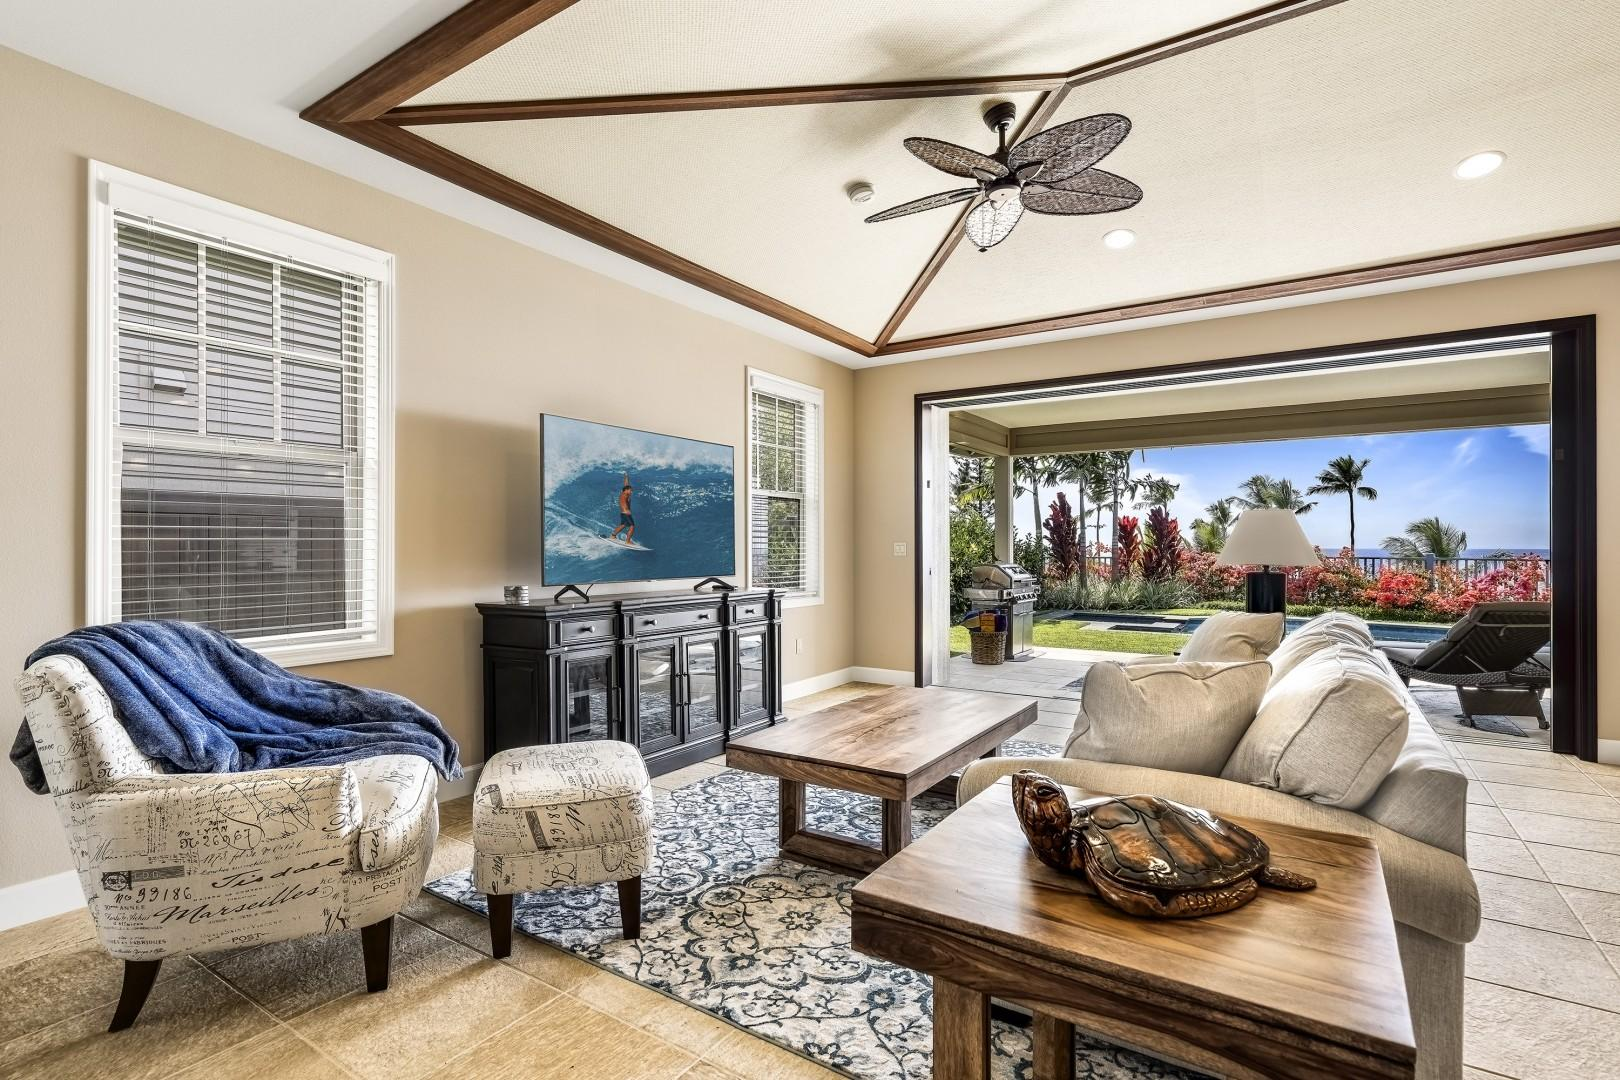 Spread out and relax in the spacious living room